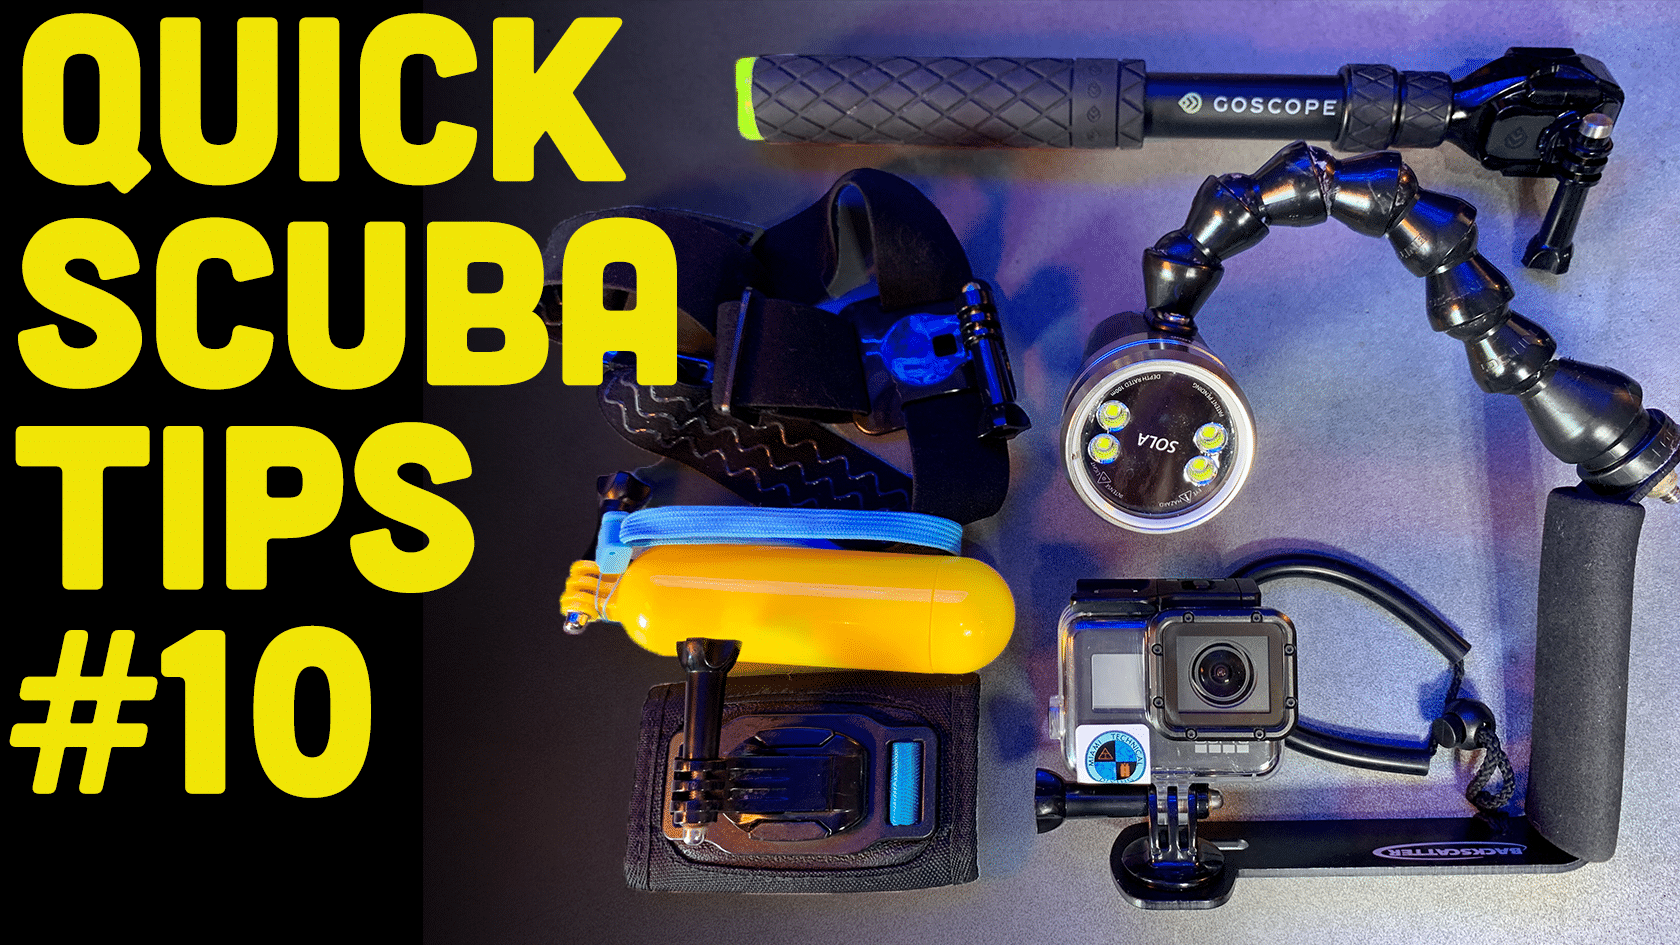 How To Mount A GoPro for Scuba Diving